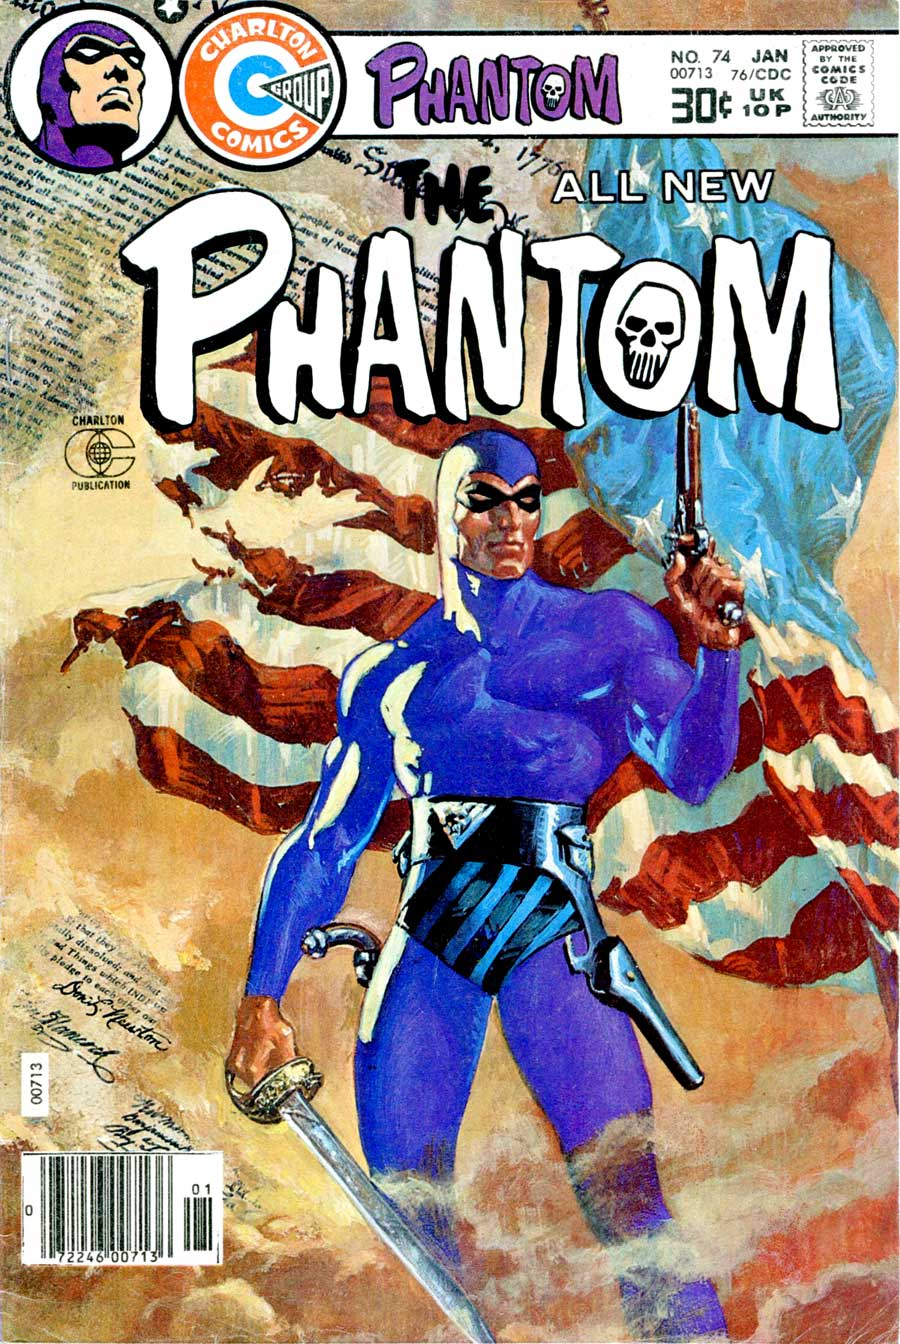 The Phantom v2 #74 charlton comic book cover art by Don Newton